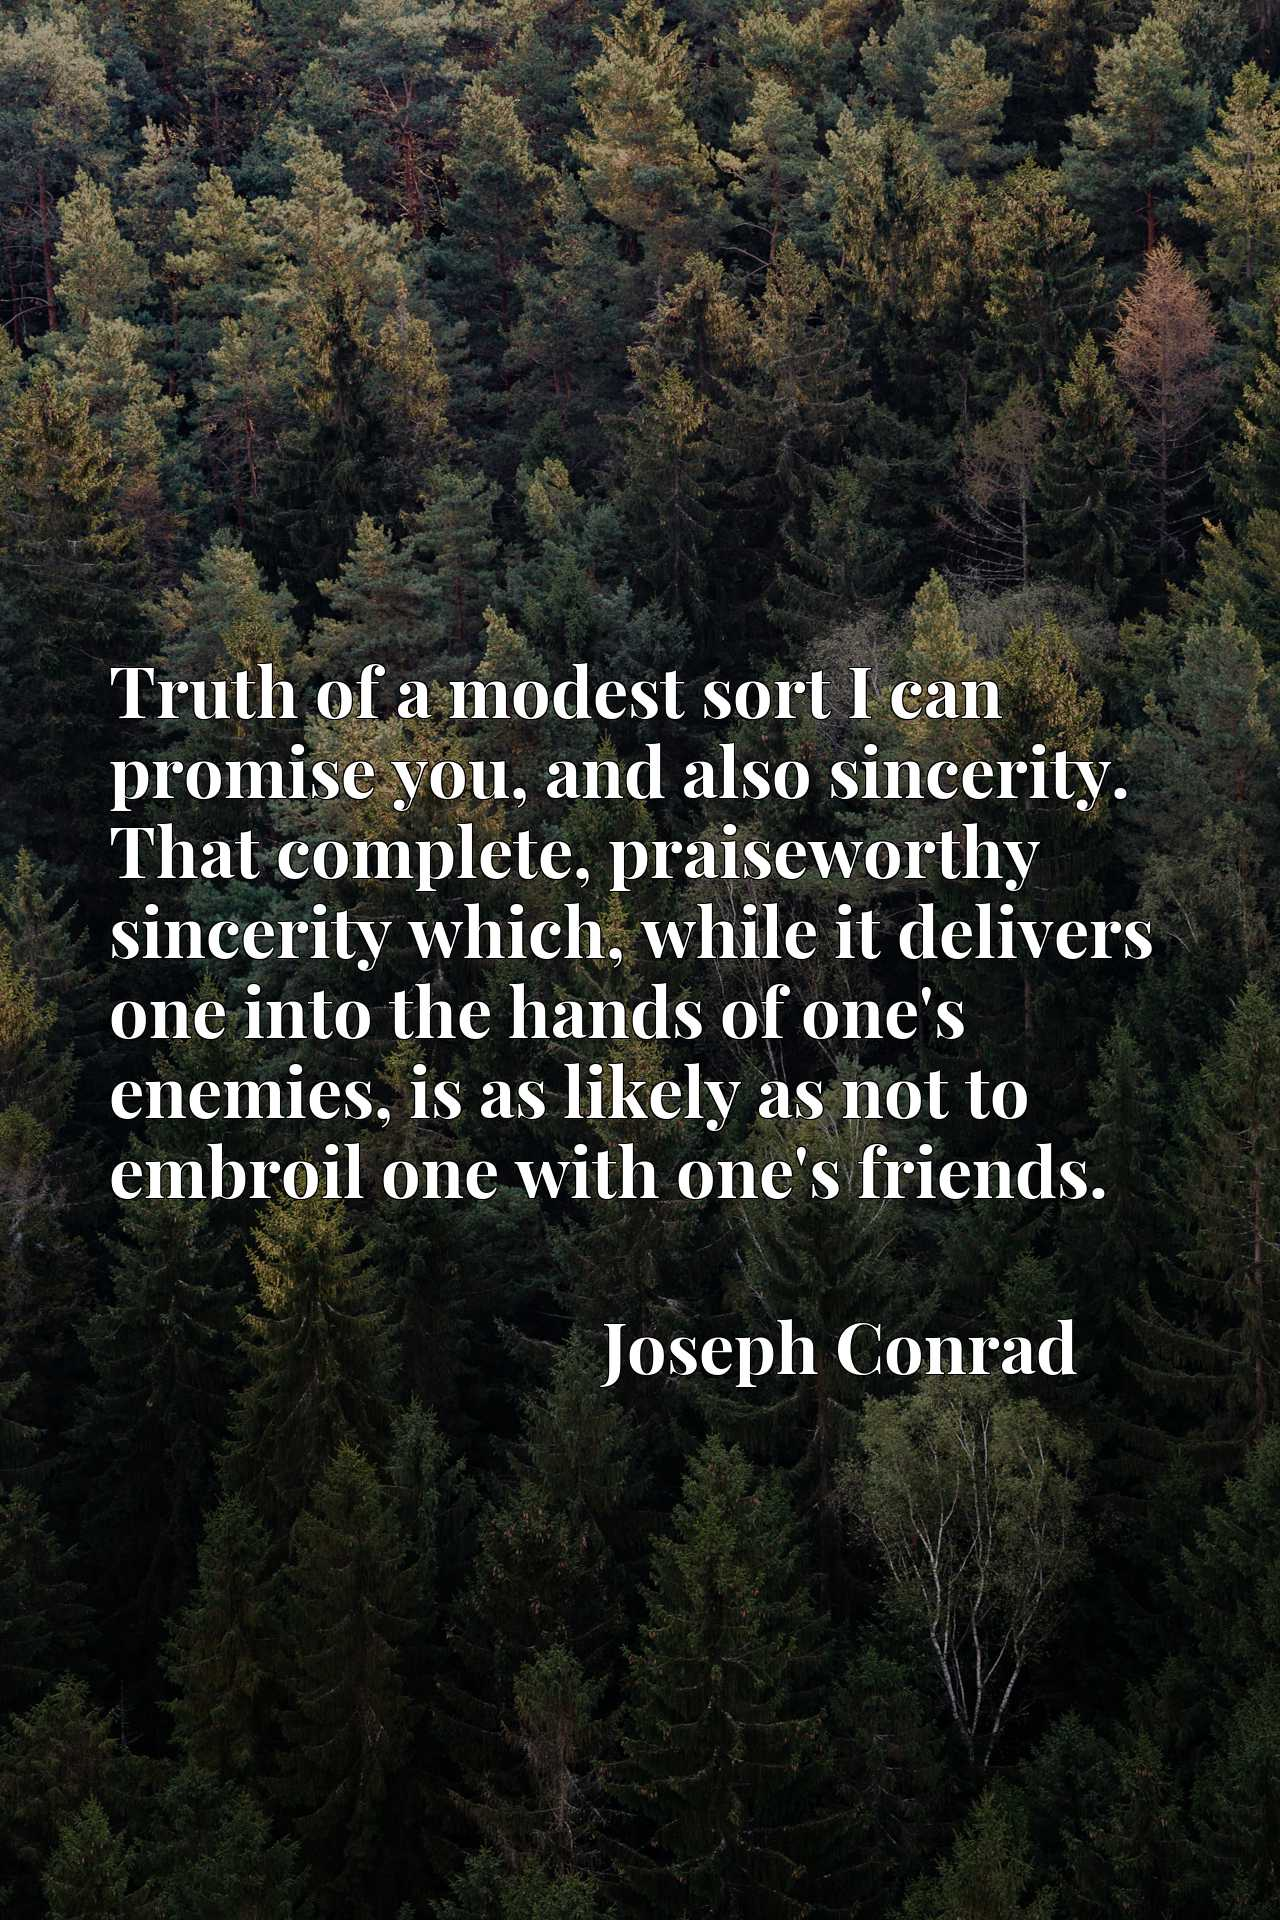 Truth of a modest sort I can promise you, and also sincerity. That complete, praiseworthy sincerity which, while it delivers one into the hands of one's enemies, is as likely as not to embroil one with one's friends.